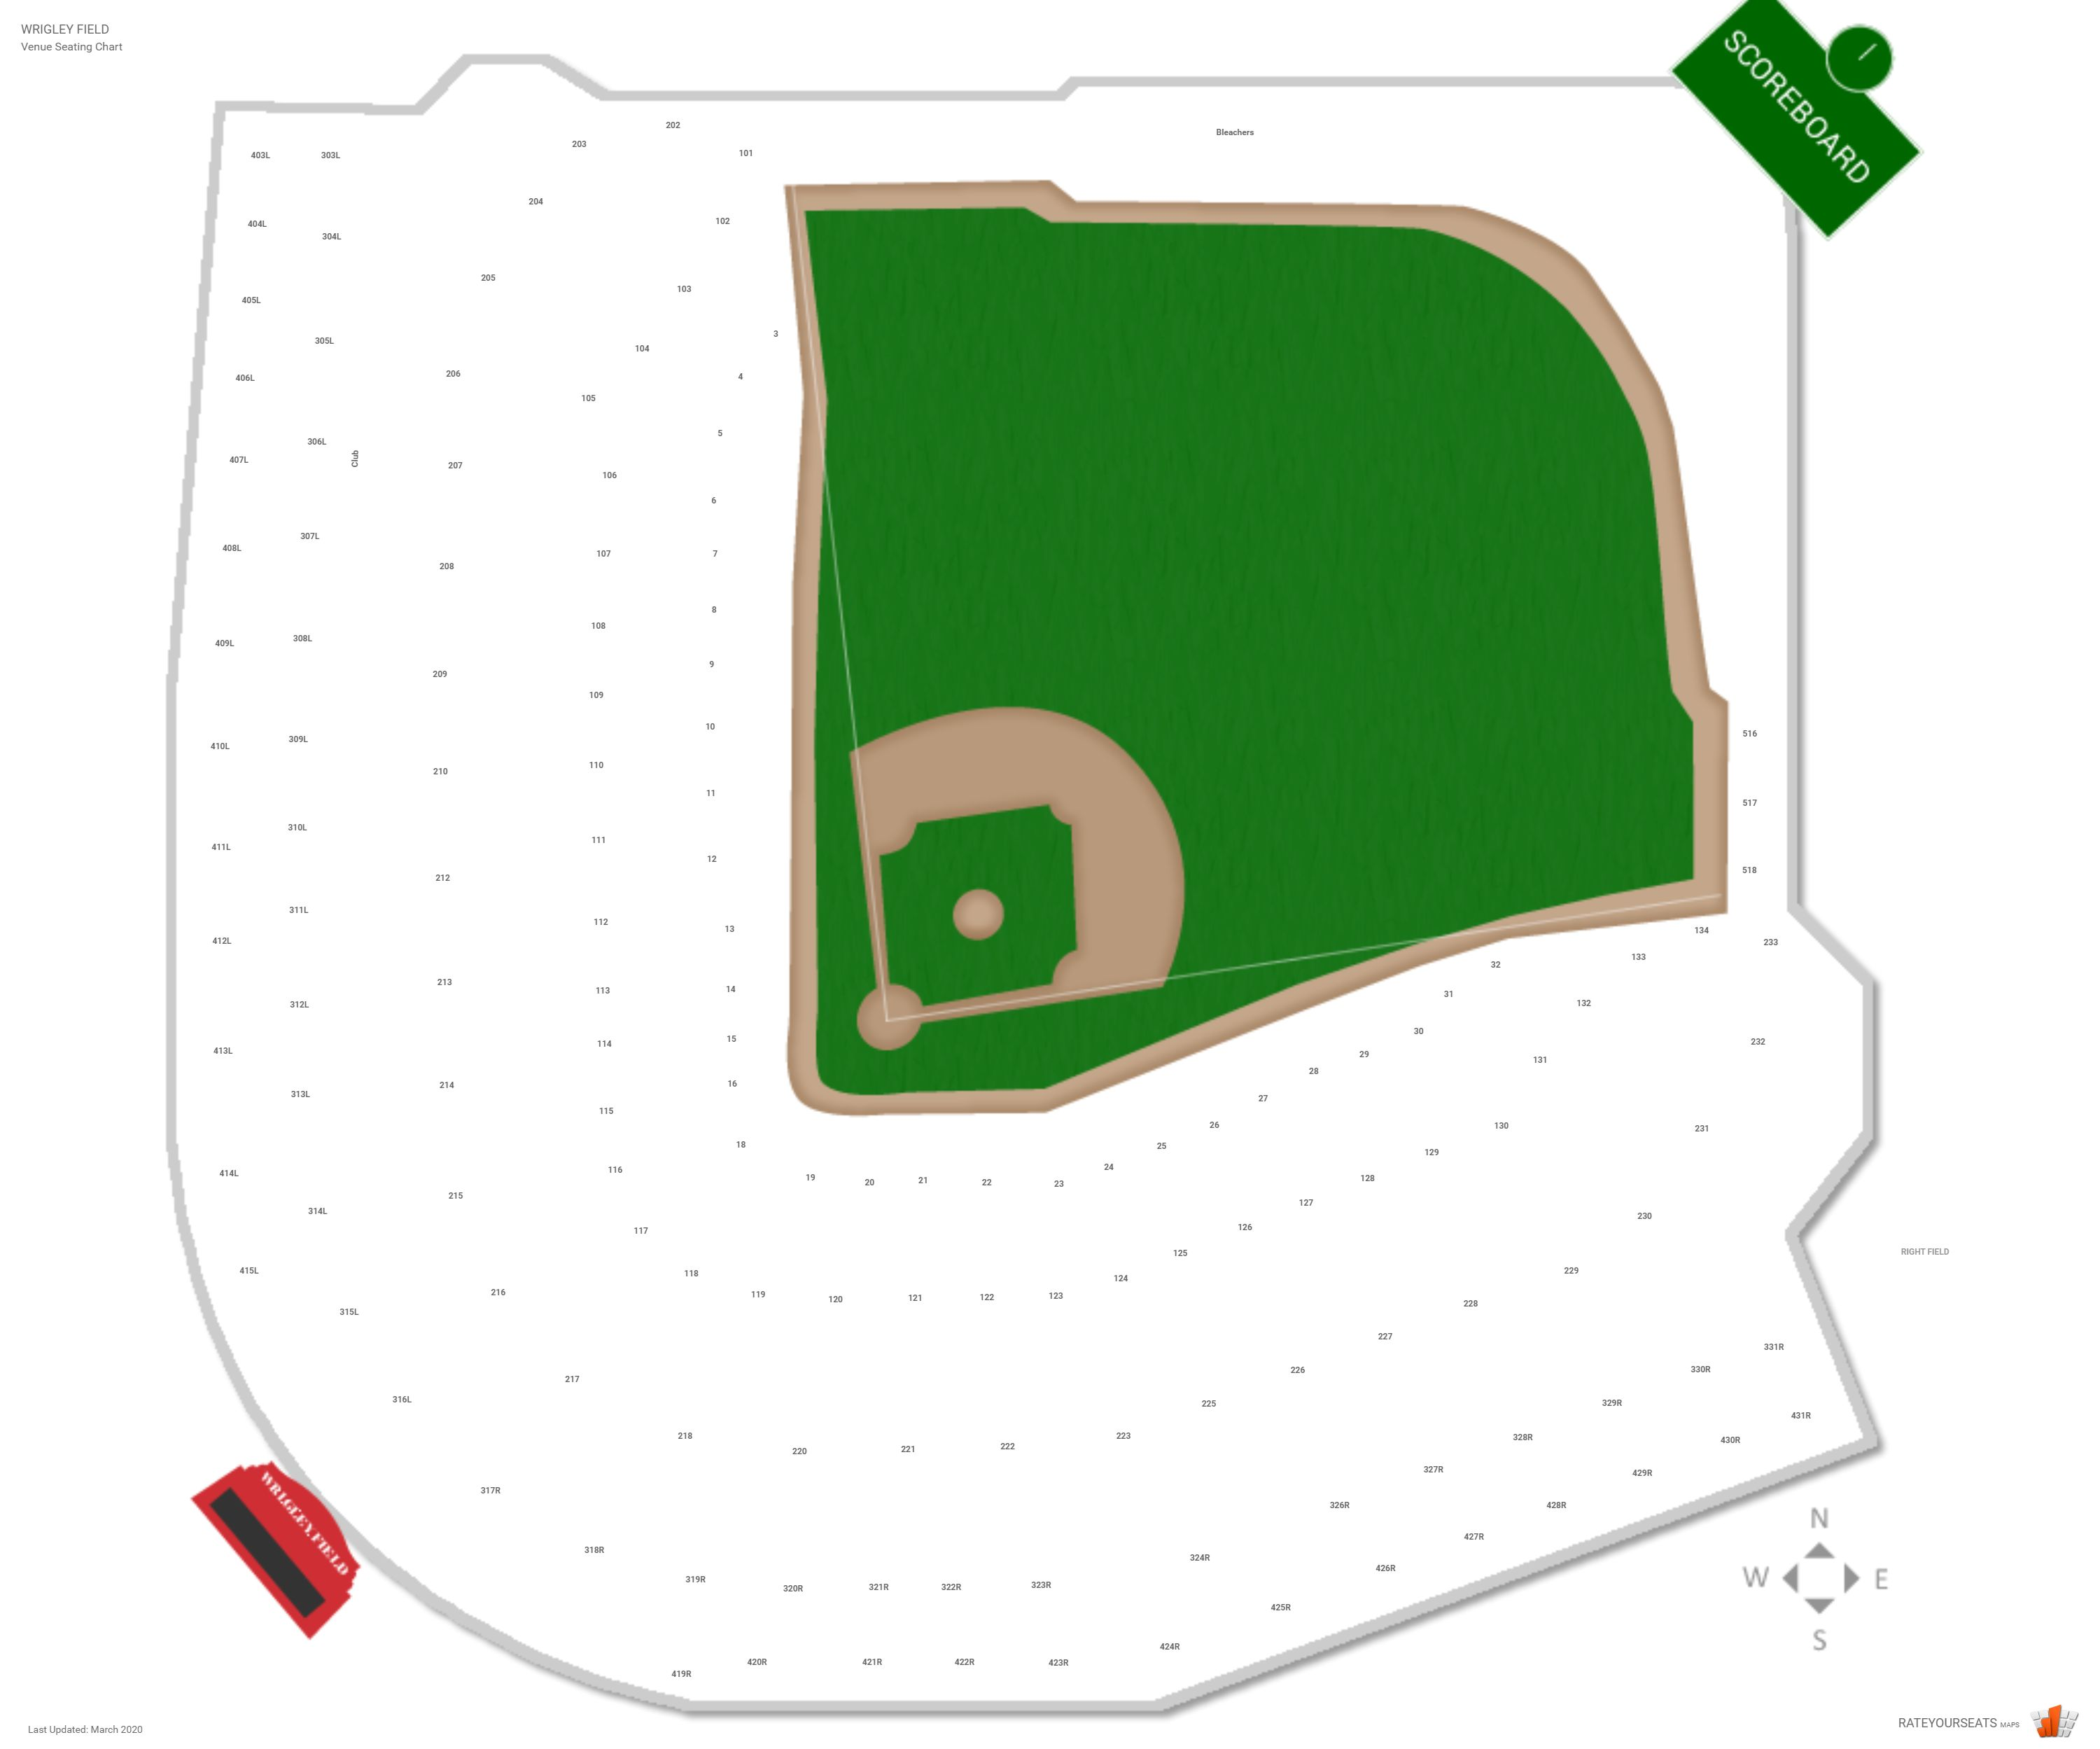 Chicago Cubs Seating Guide - Wrigley Field - RateYourSeats.com